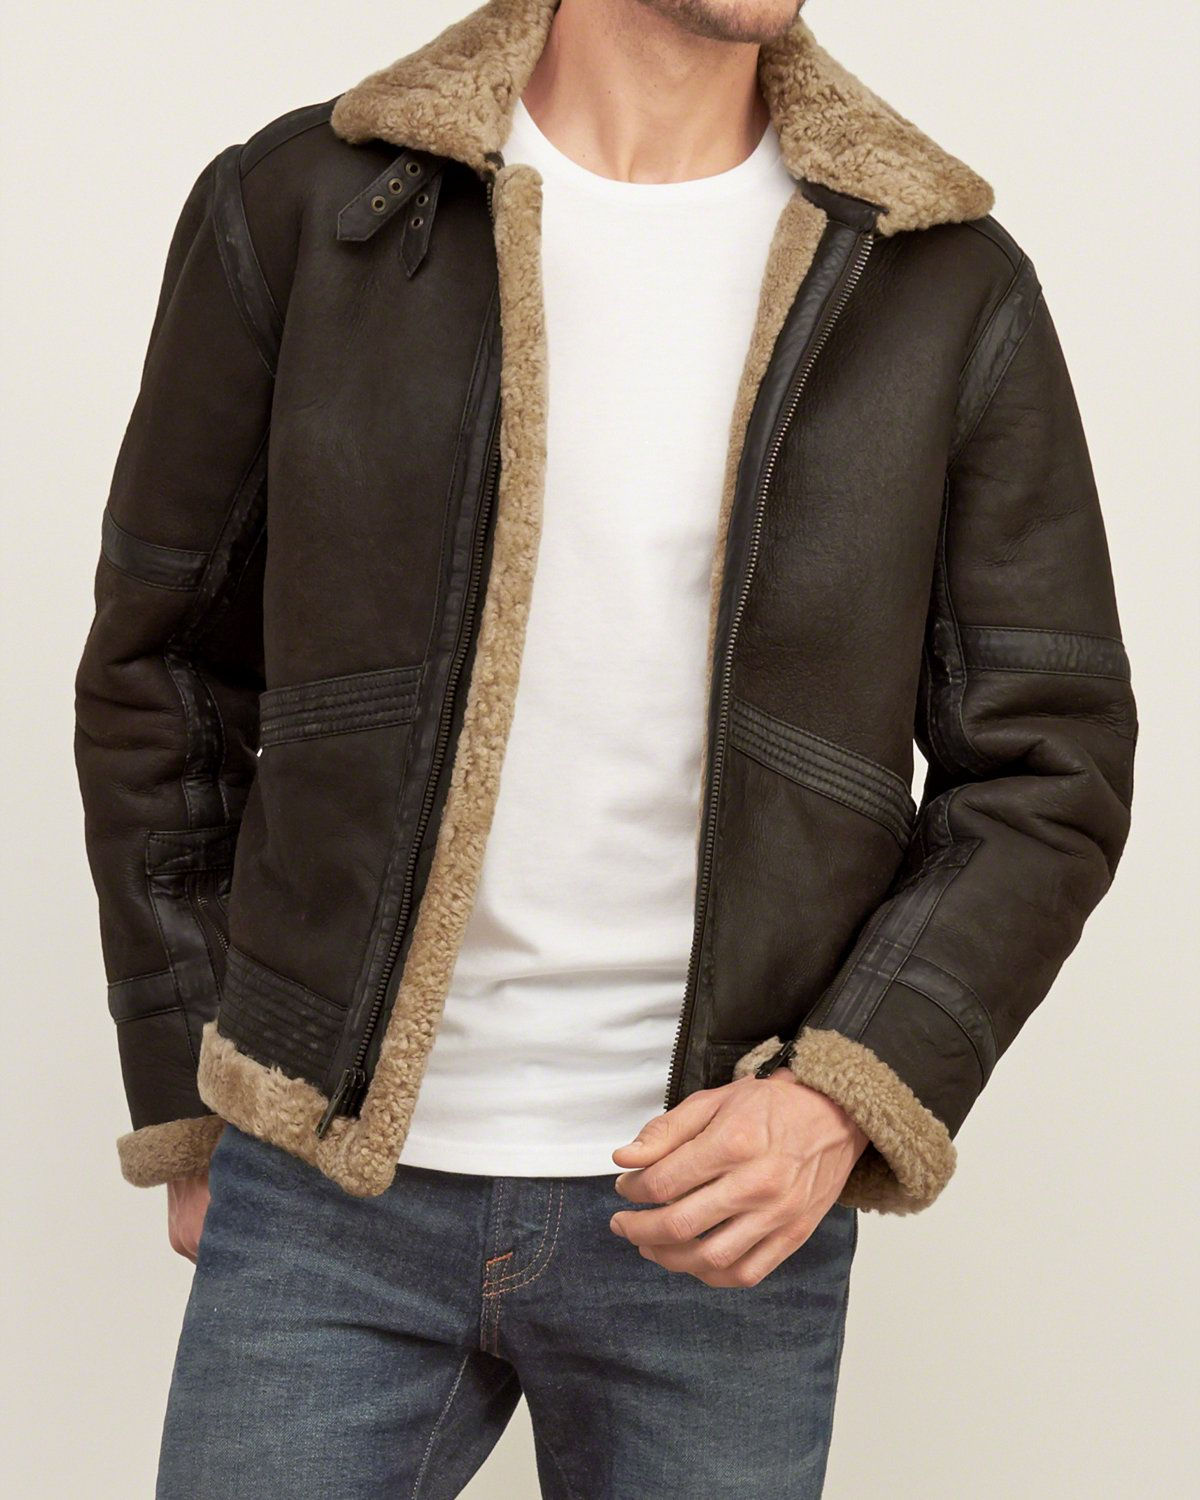 Mens Classic Shearling Jacket Mens Outerwear & Jackets